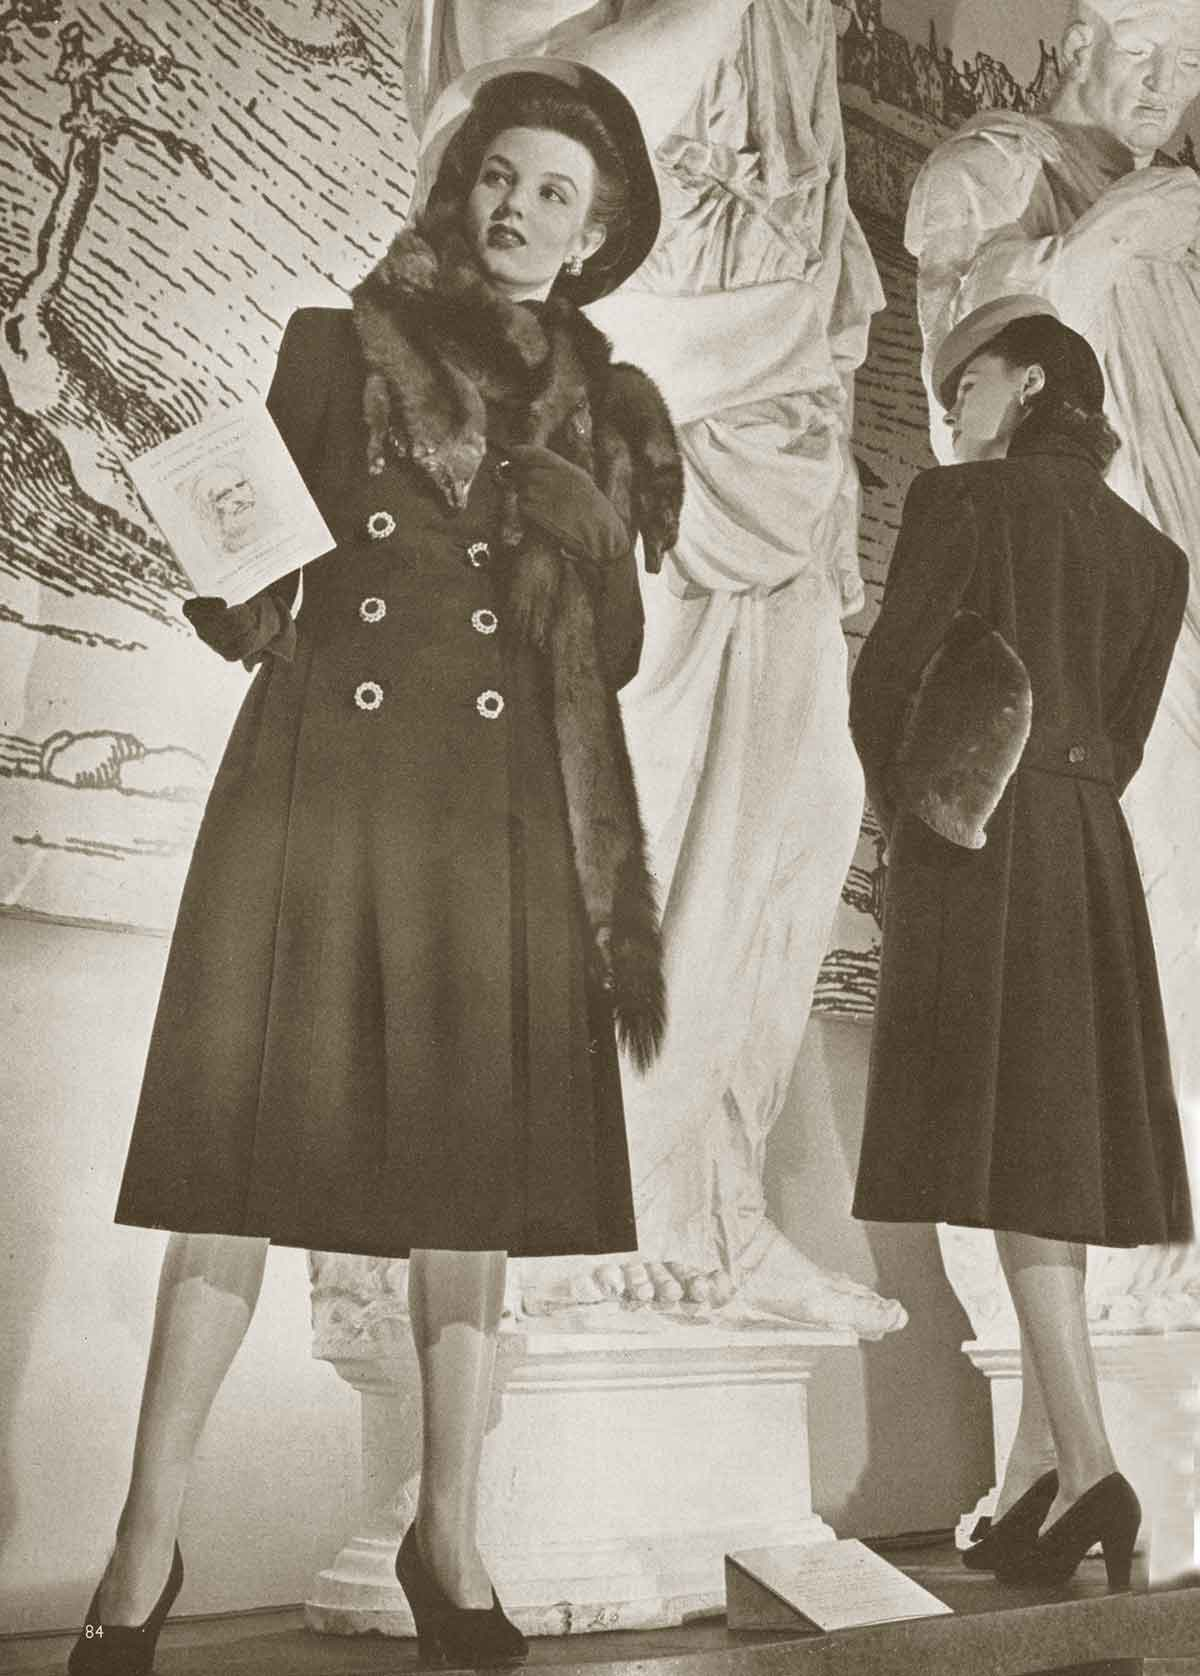 1940s Fashion What Did Women Wear In The 1940s: 1940 Vogue Fashion - Winter Coats And Dresses